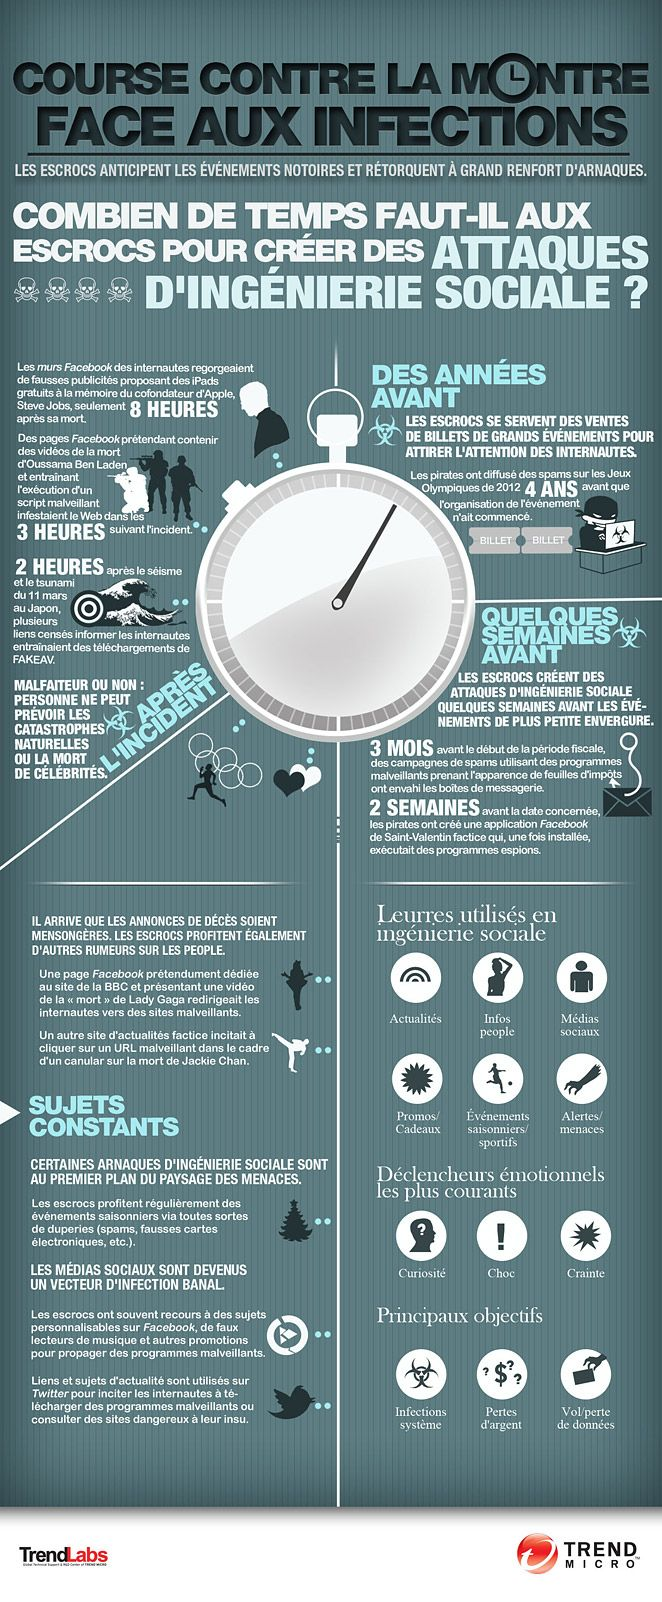 Course Contre La Montre Face Aux Infections